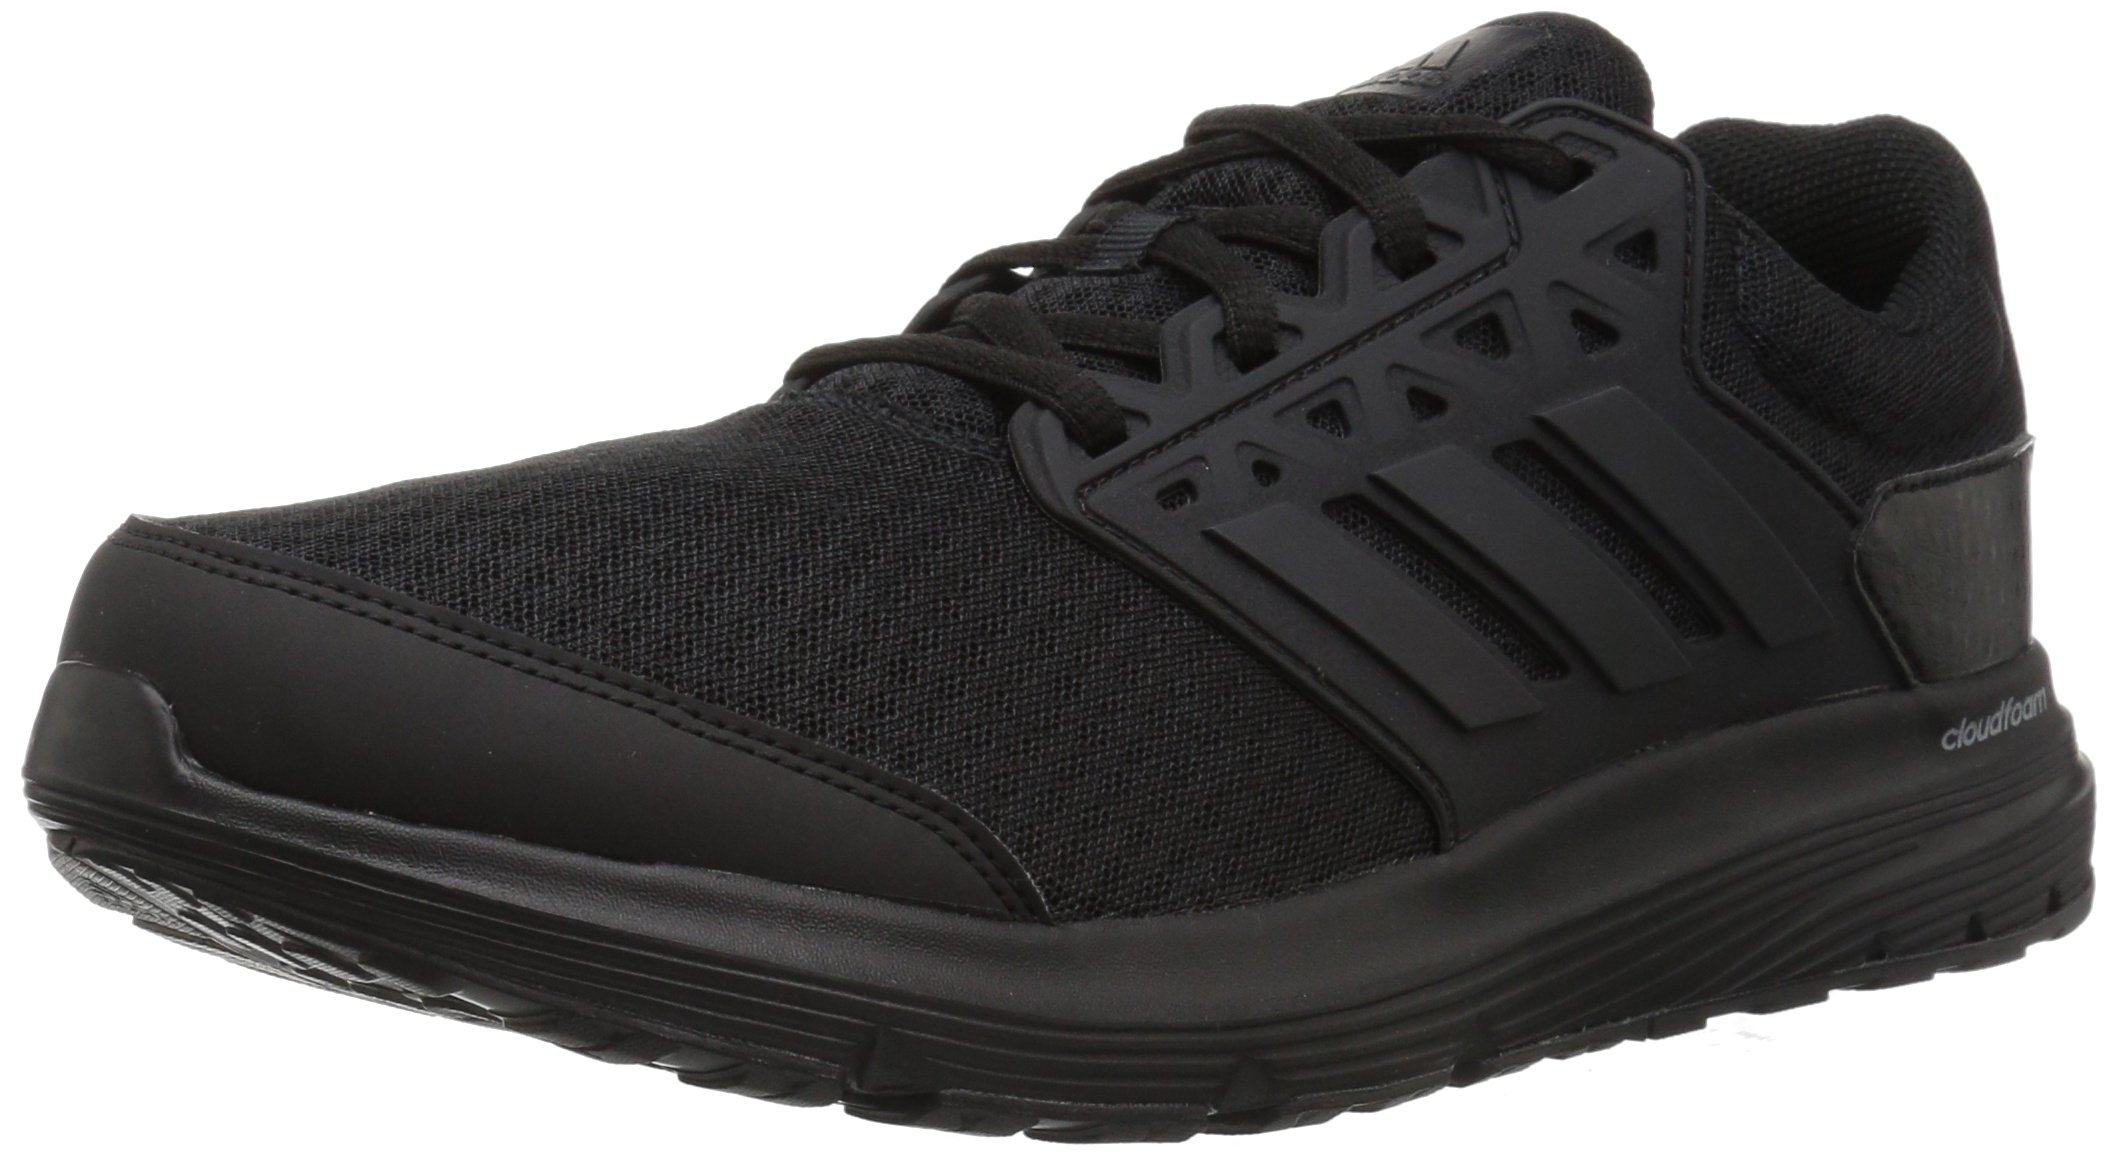 adidas Men's Galaxy 3 m Running Shoe, Black/Black/Black, 10.5 Medium US